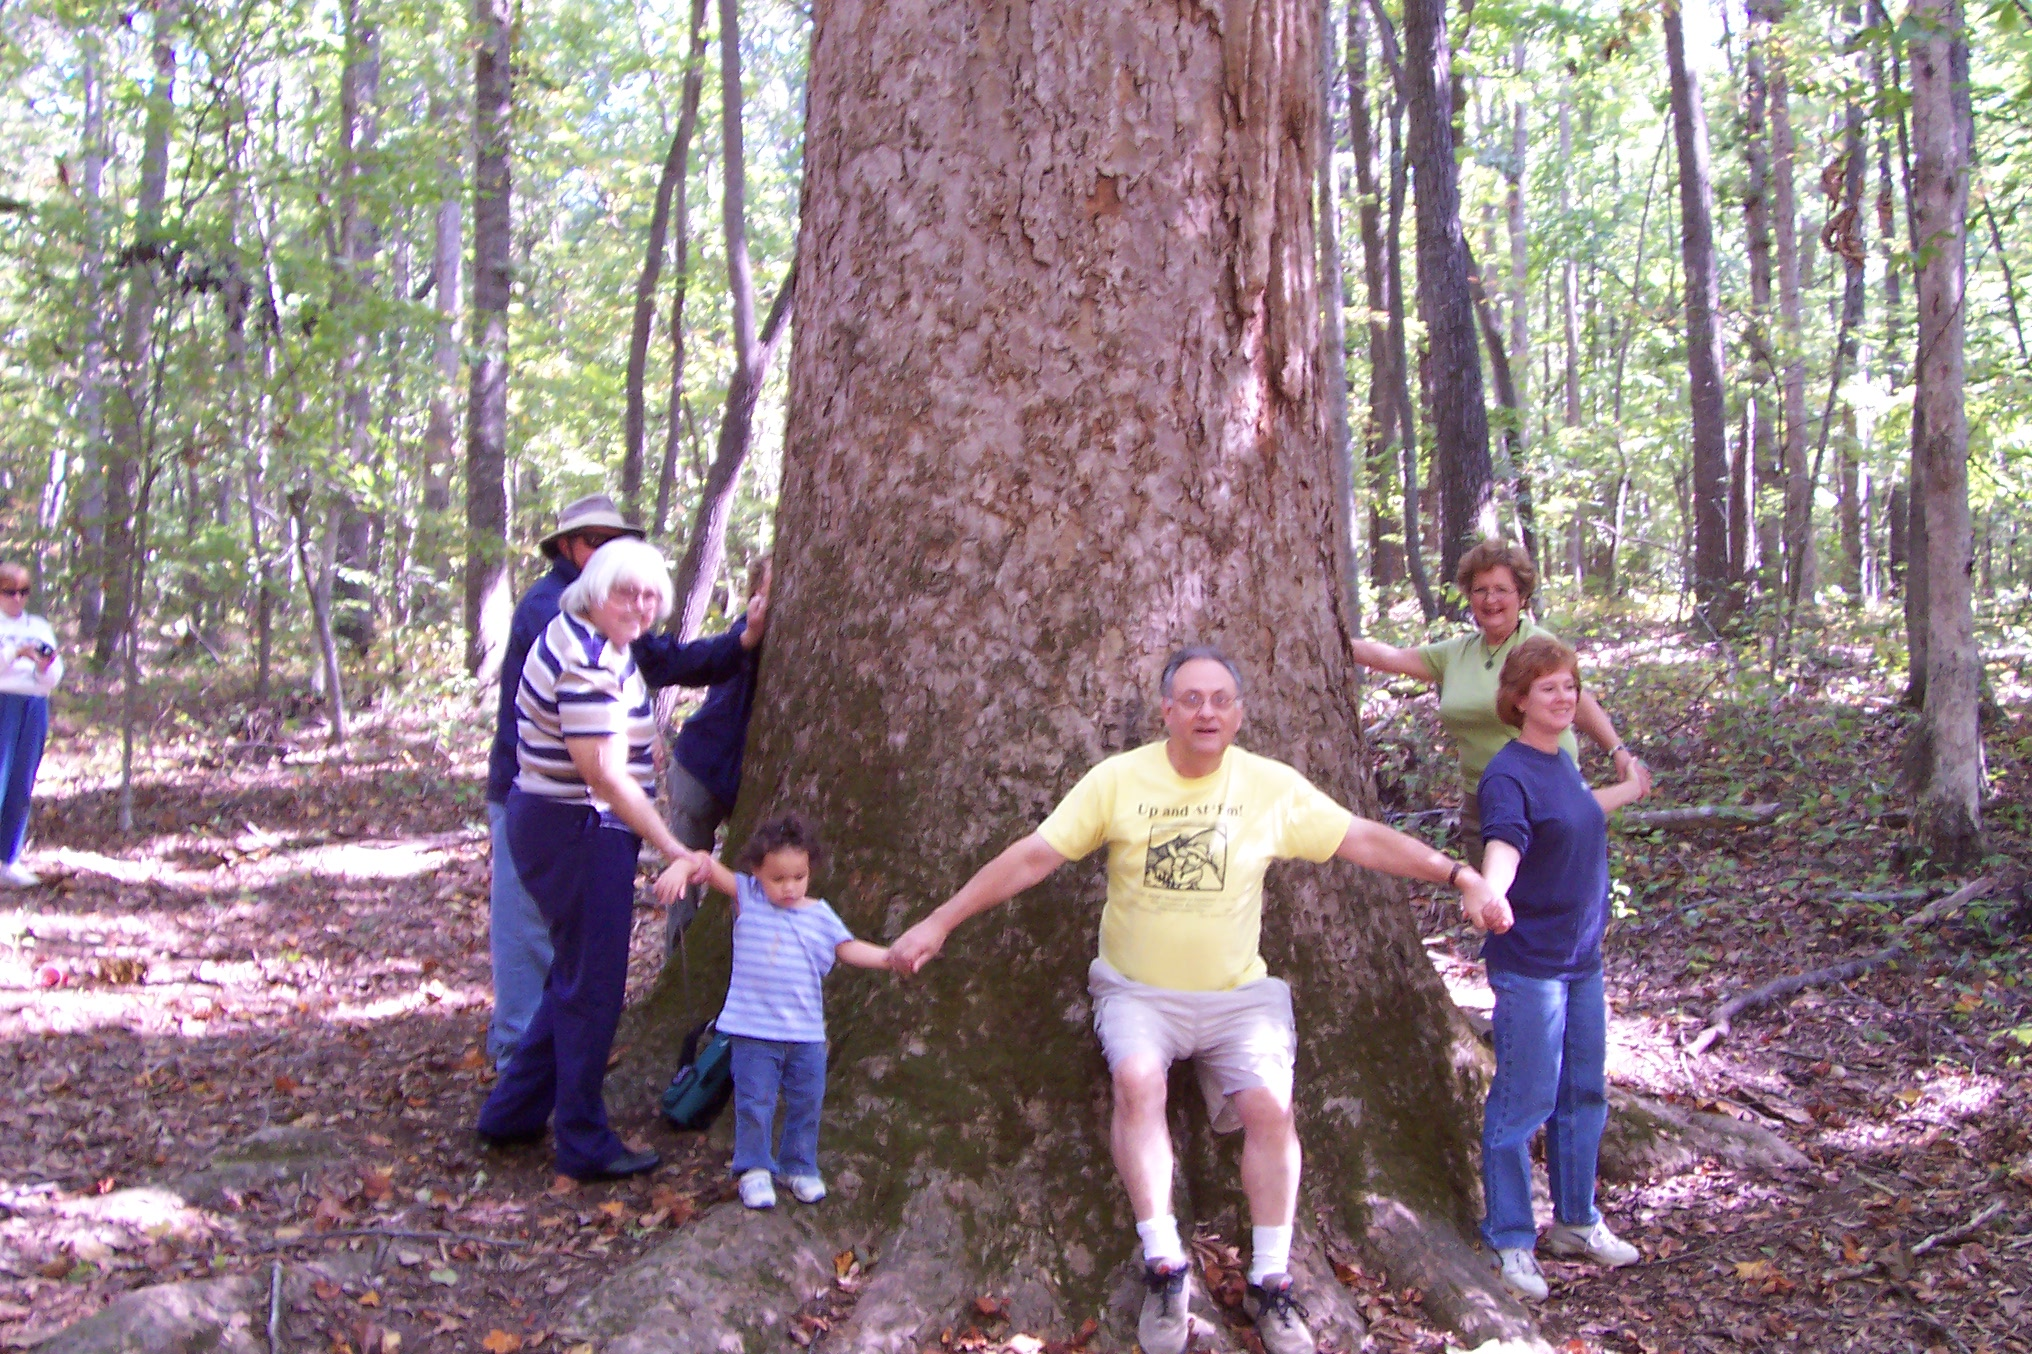 The Big Poplar at Shallowford Battleground